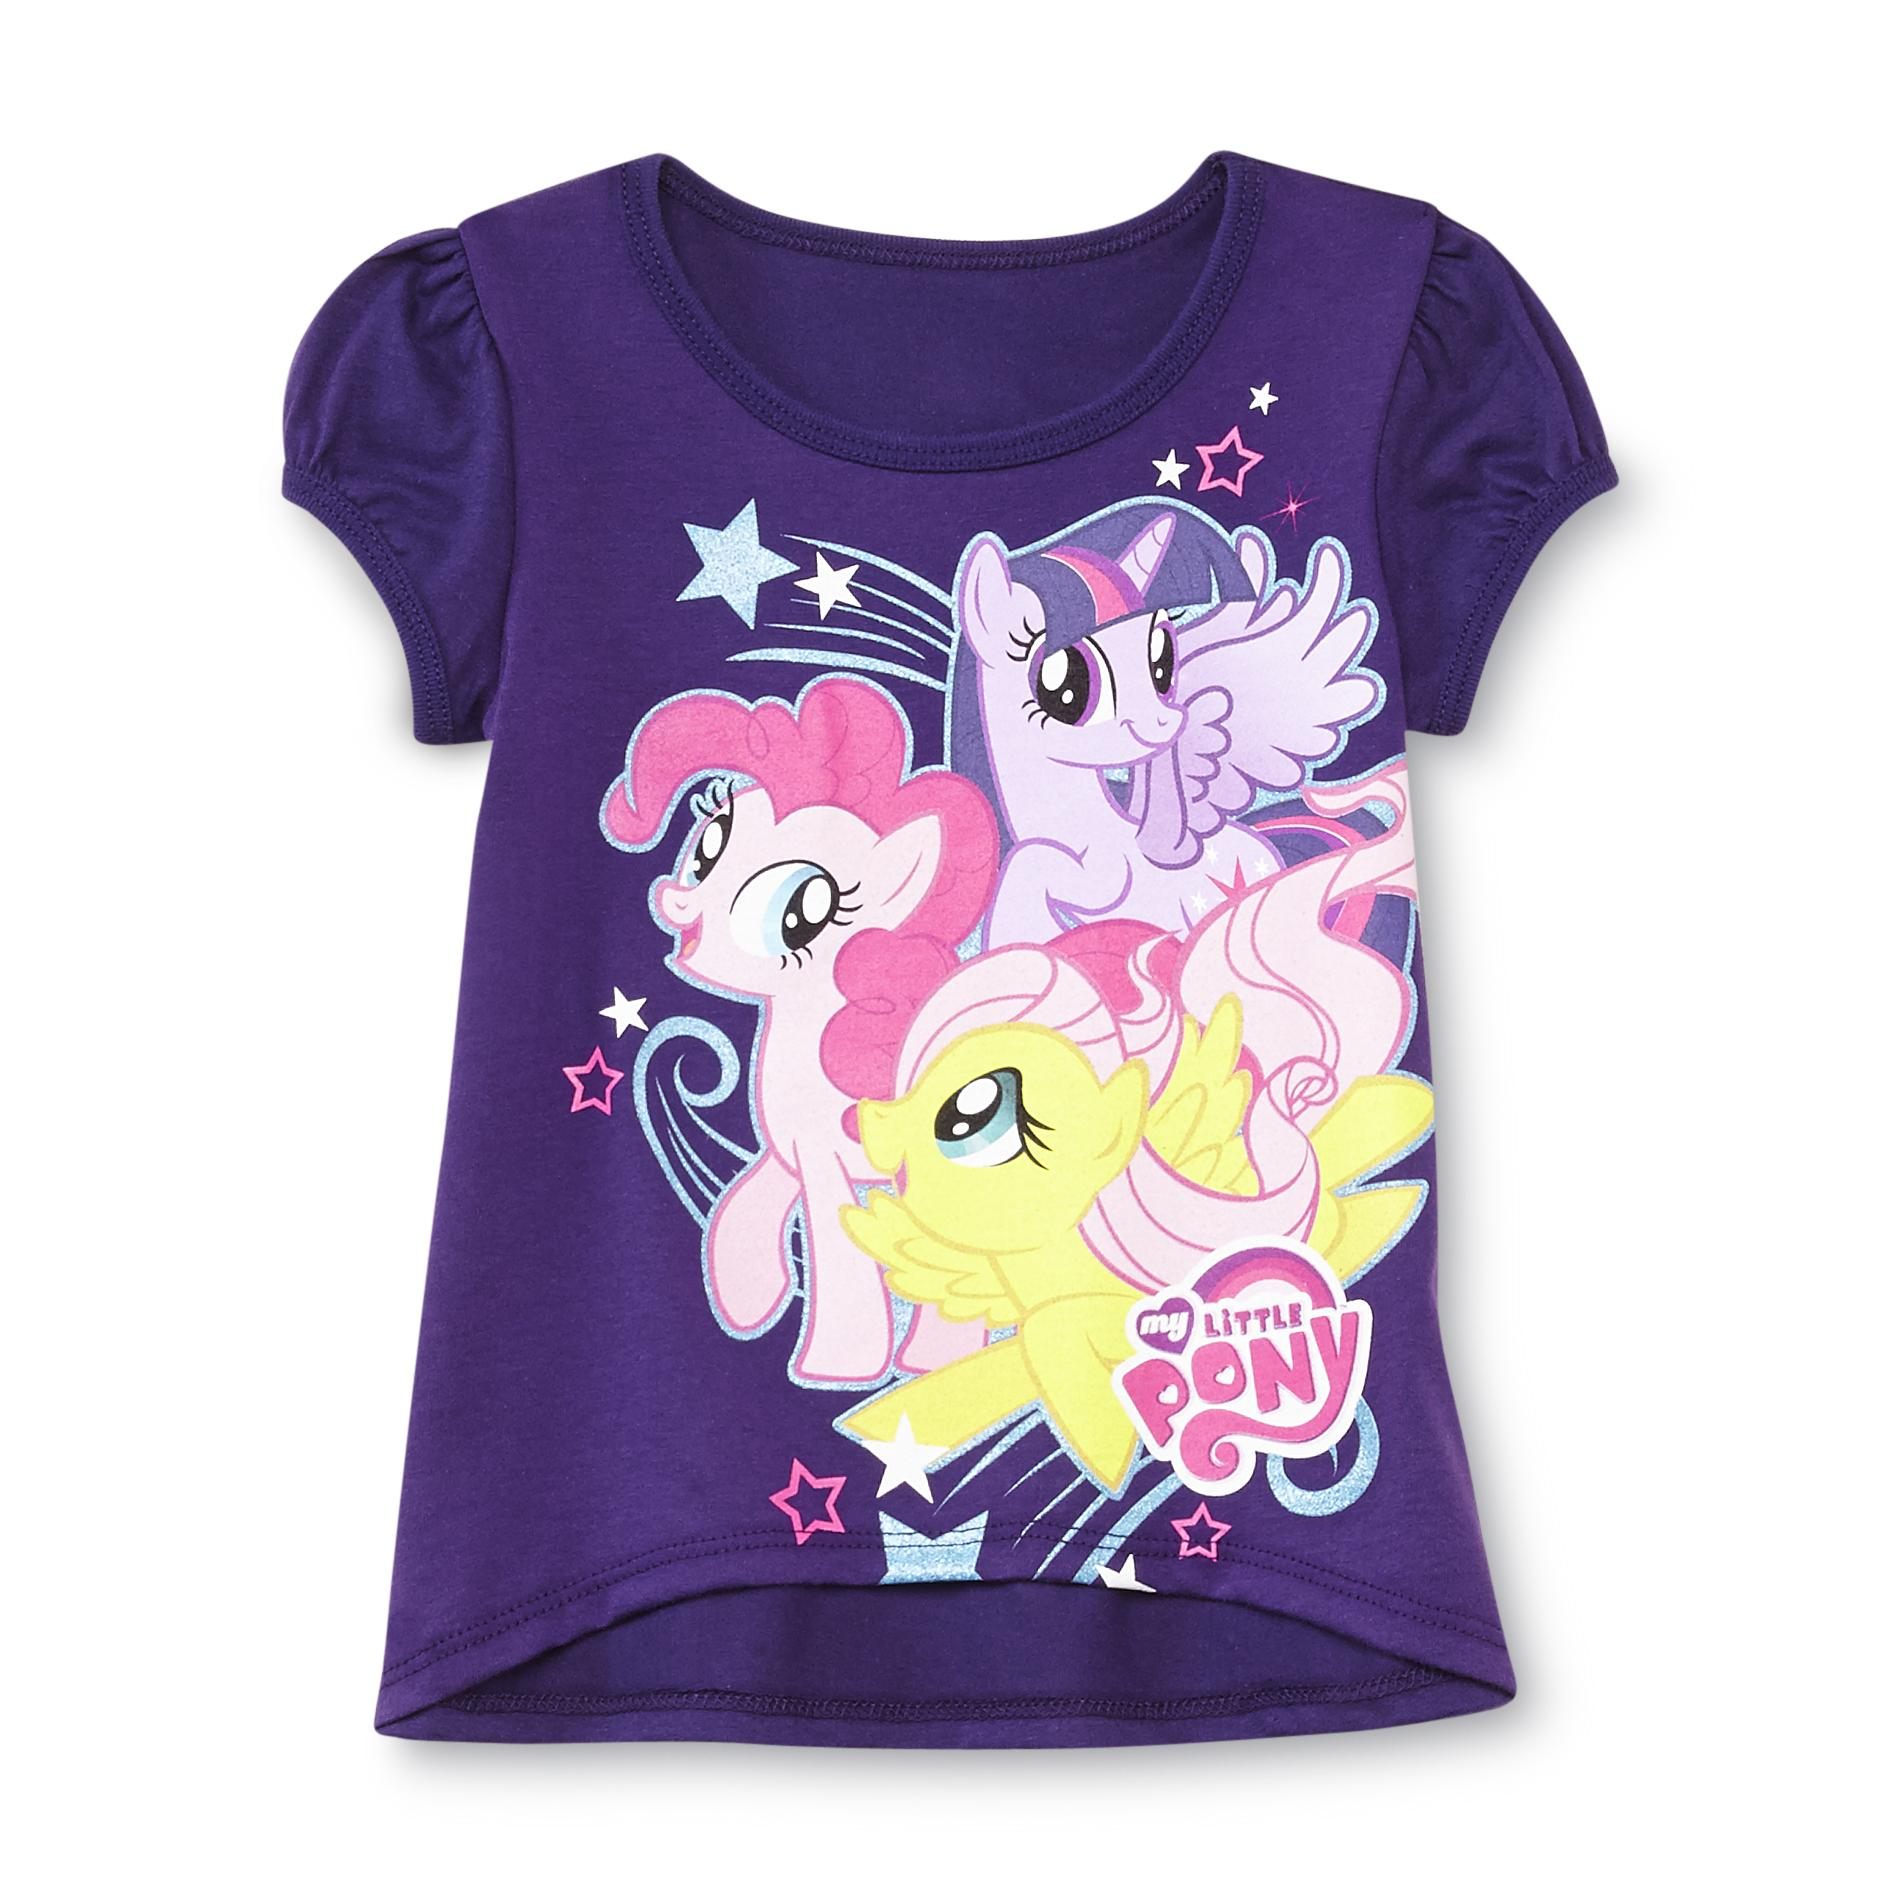 My Little Pony Shirts for Toddler Girls